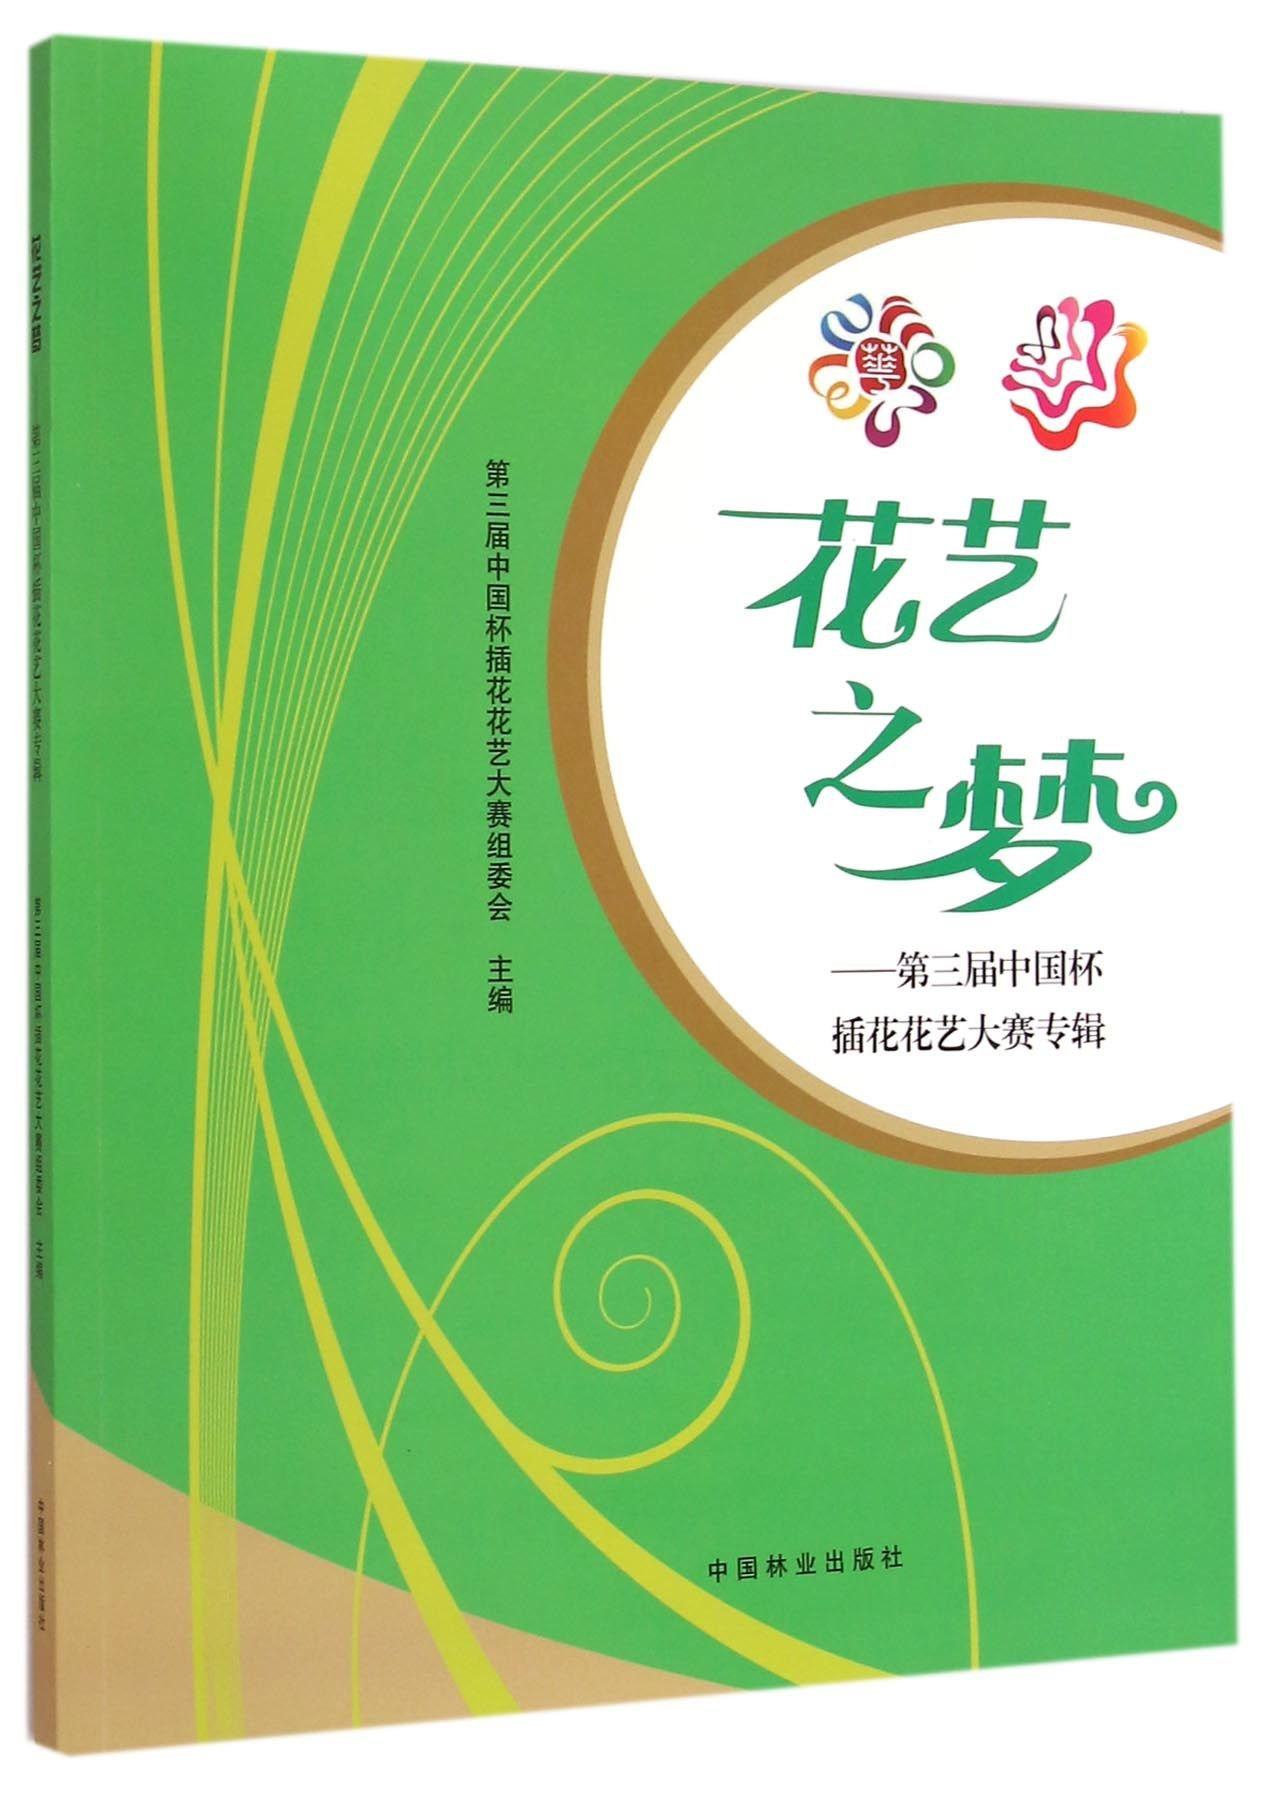 Download The Floriculture Dream: The Third China Cup Ikebana Floriculture Contest Album (Chinese Edition) pdf epub